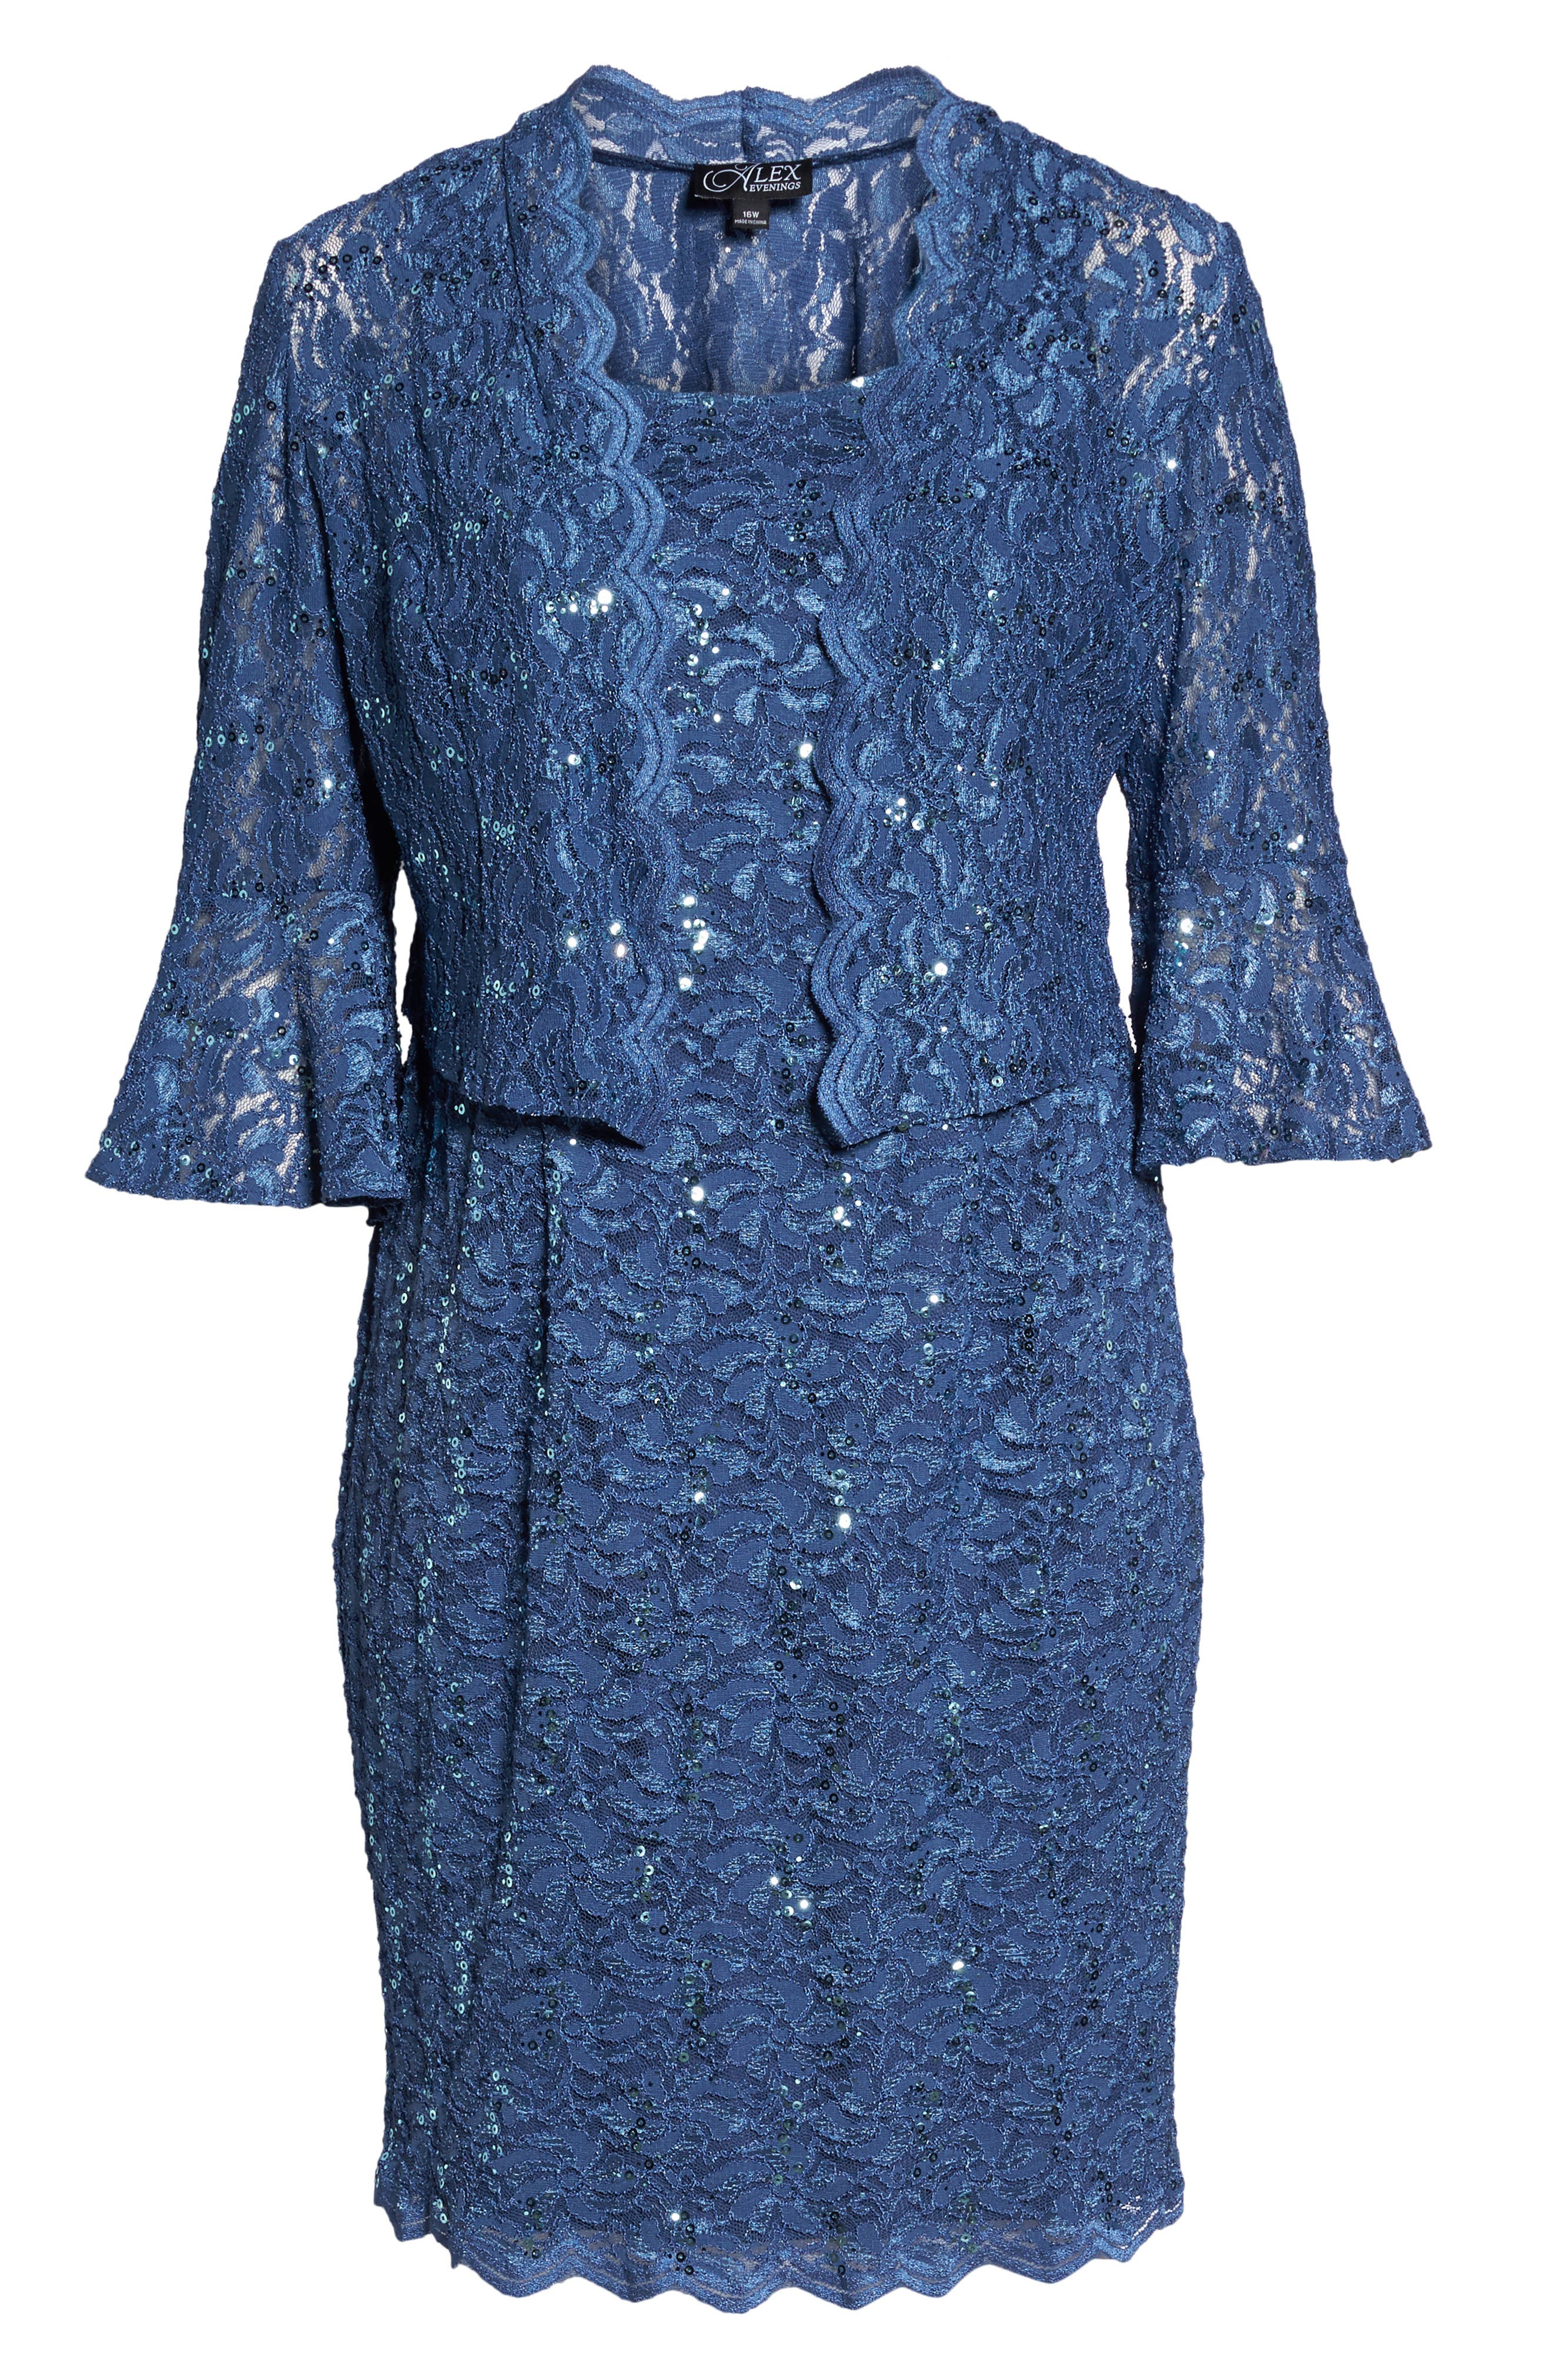 Sequin Lace Sheath Dress with Jacket,                             Alternate thumbnail 4, color,                             Wedgewood